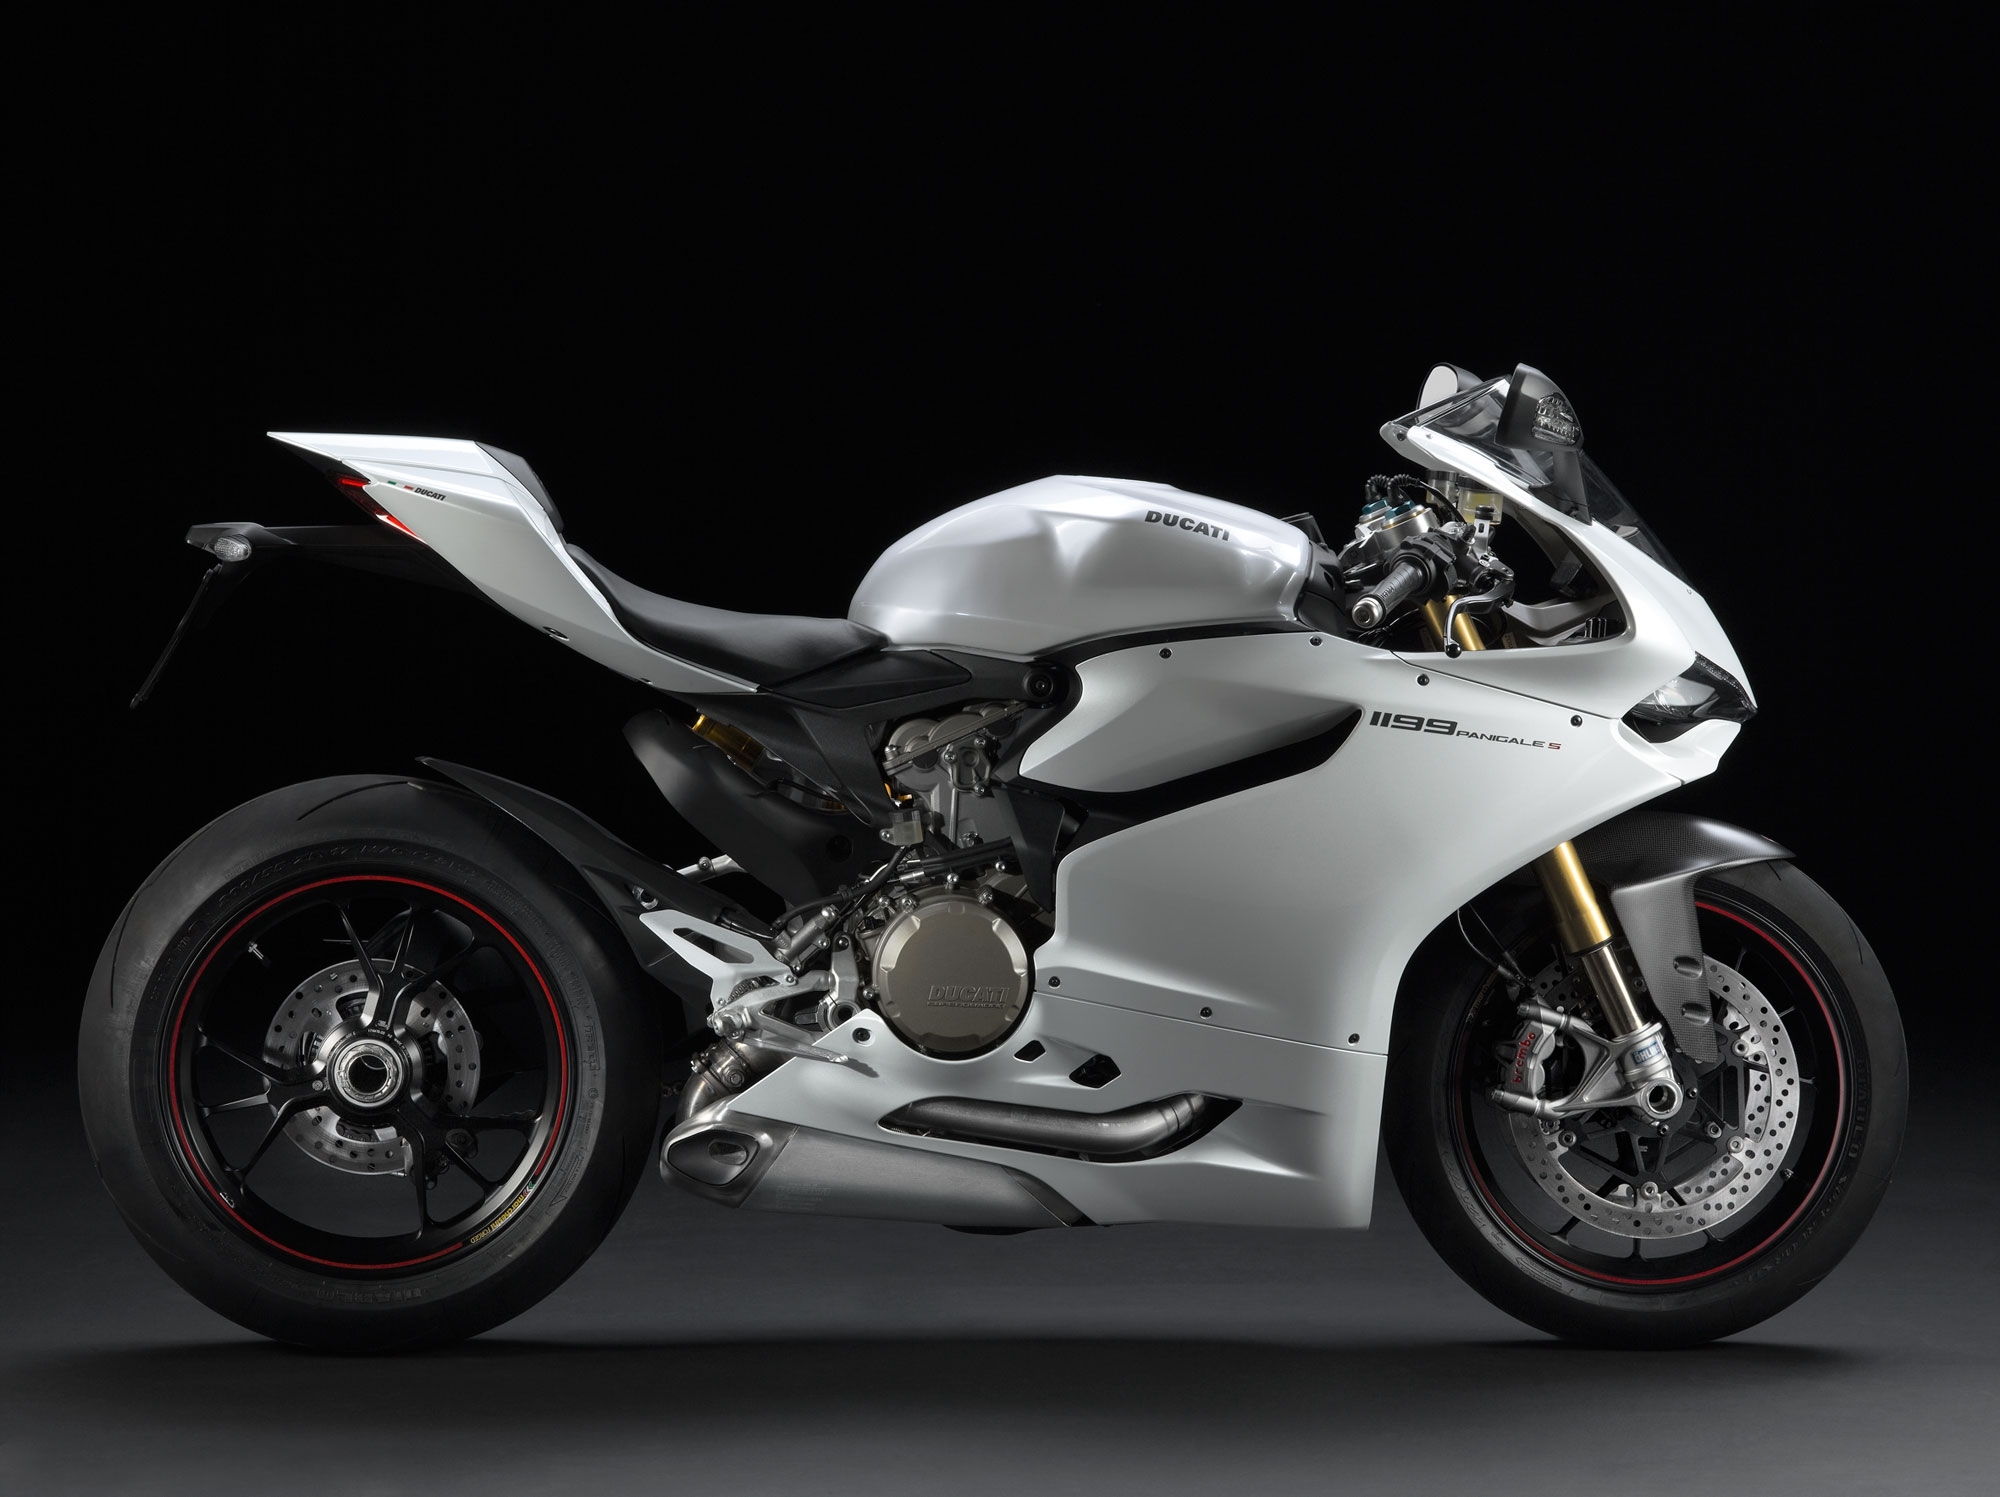 ducati superbike hd background